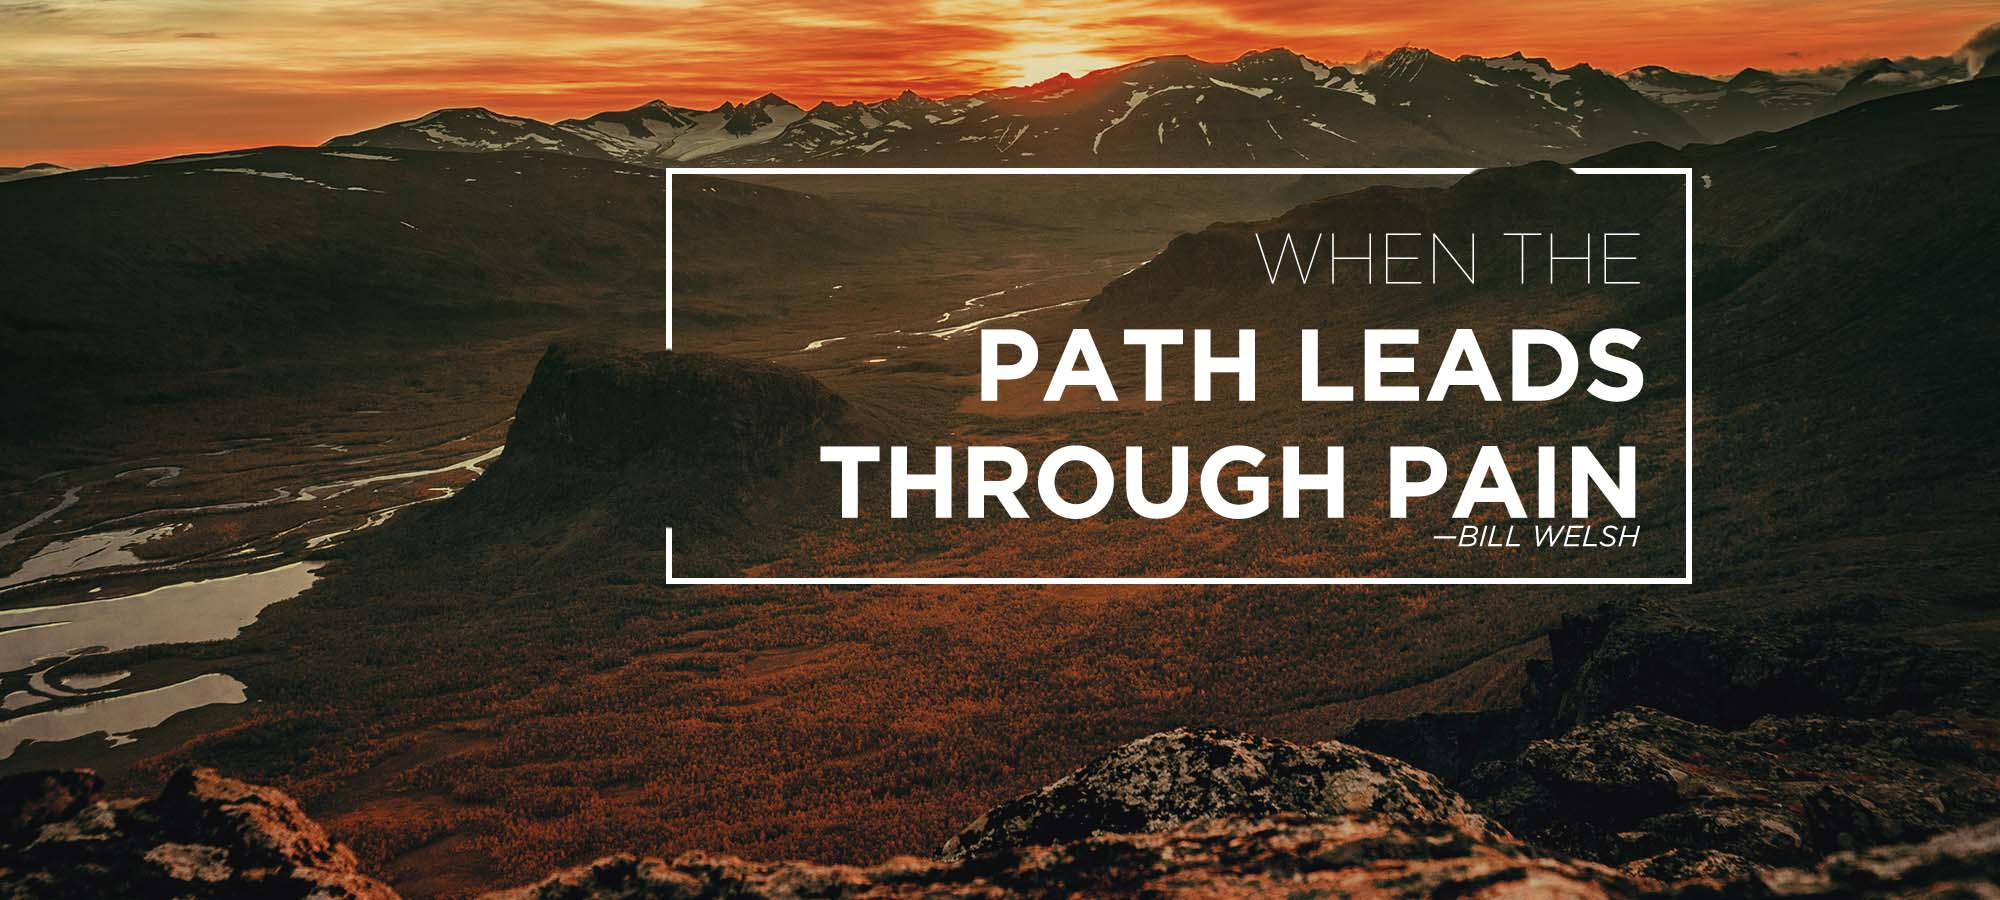 When The Path Leads Through Pain